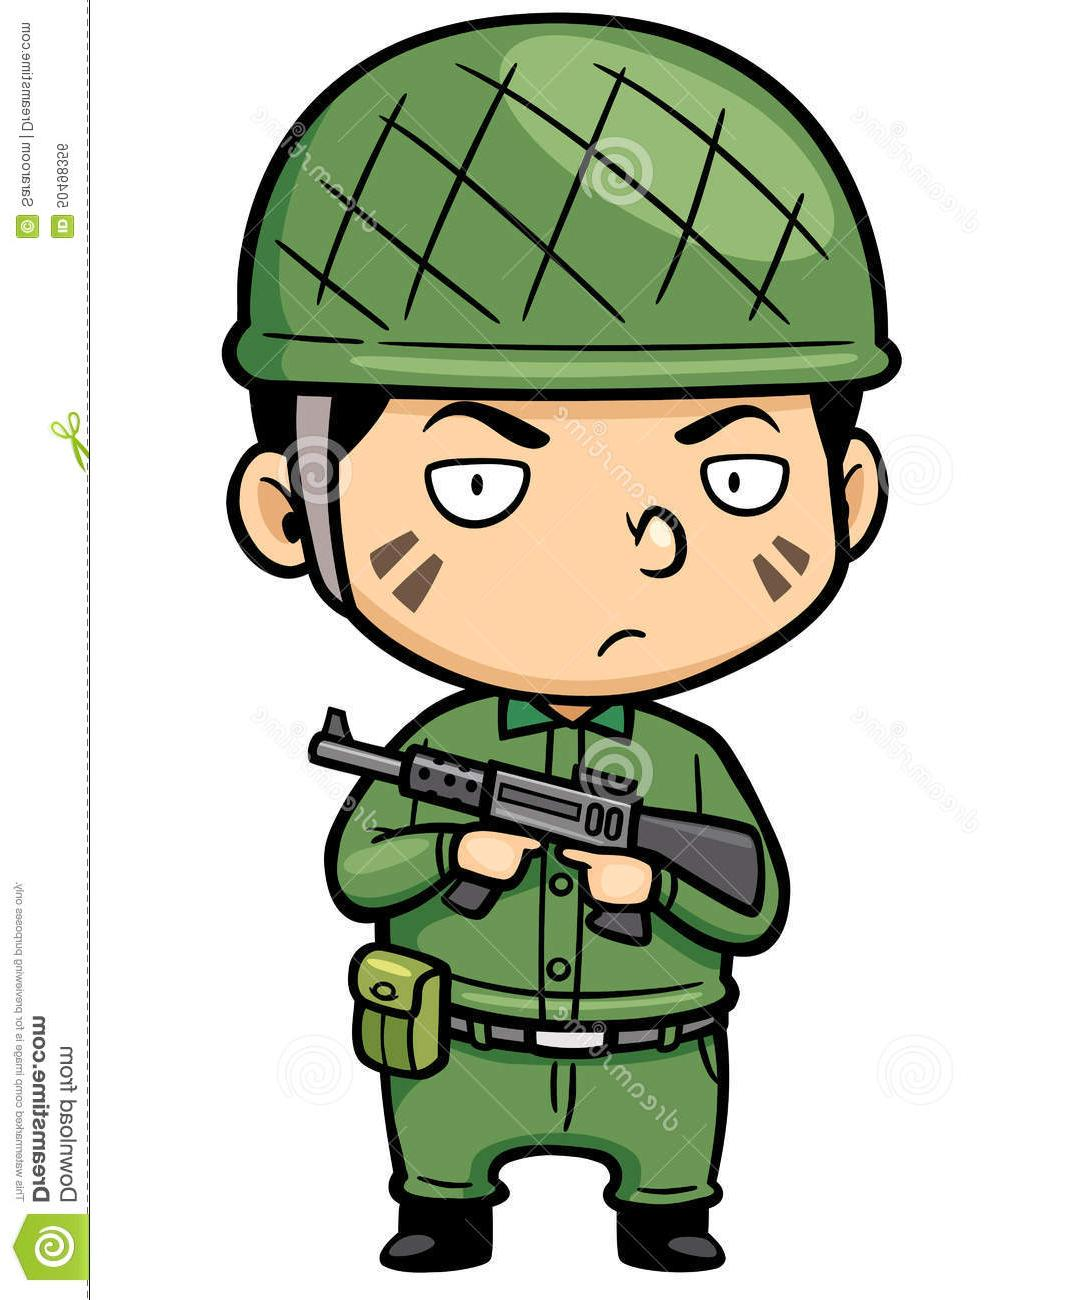 Army person clipart clip art royalty free library Army Clipart & Look At Clip Art Images - ClipartLook clip art royalty free library